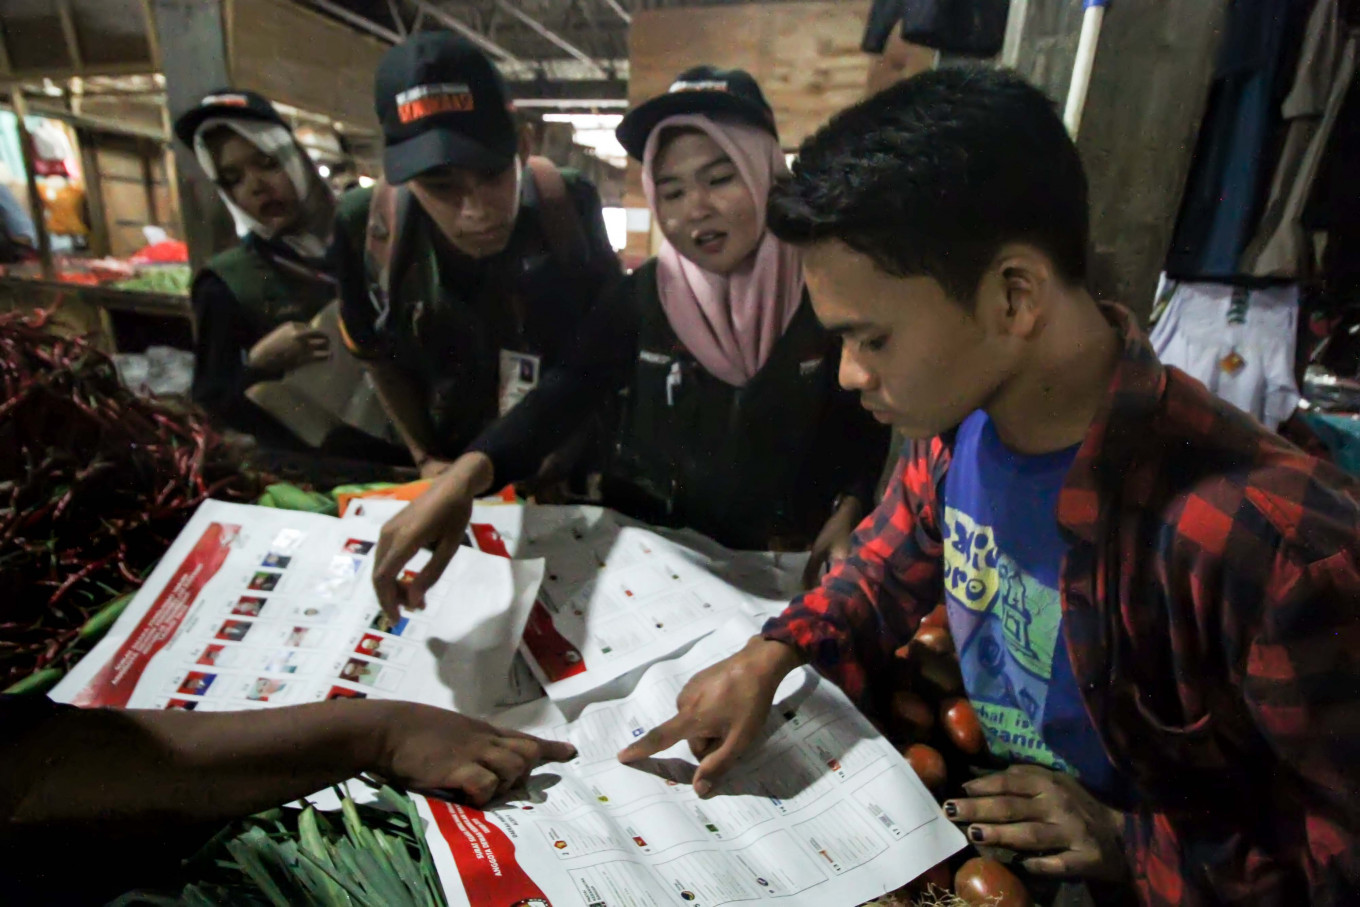 Volunteers at the Lhokseumawe Independent Elections Commission (KIP) show residents ballot samples at the Lhokseumawe Inpres traditional market in Aceh on April 1. The event introduced five types of ballots as well as voting and folding procedures in order to boost voter turnout and spread awareness about residents' voting rights. Antara/Rahmad